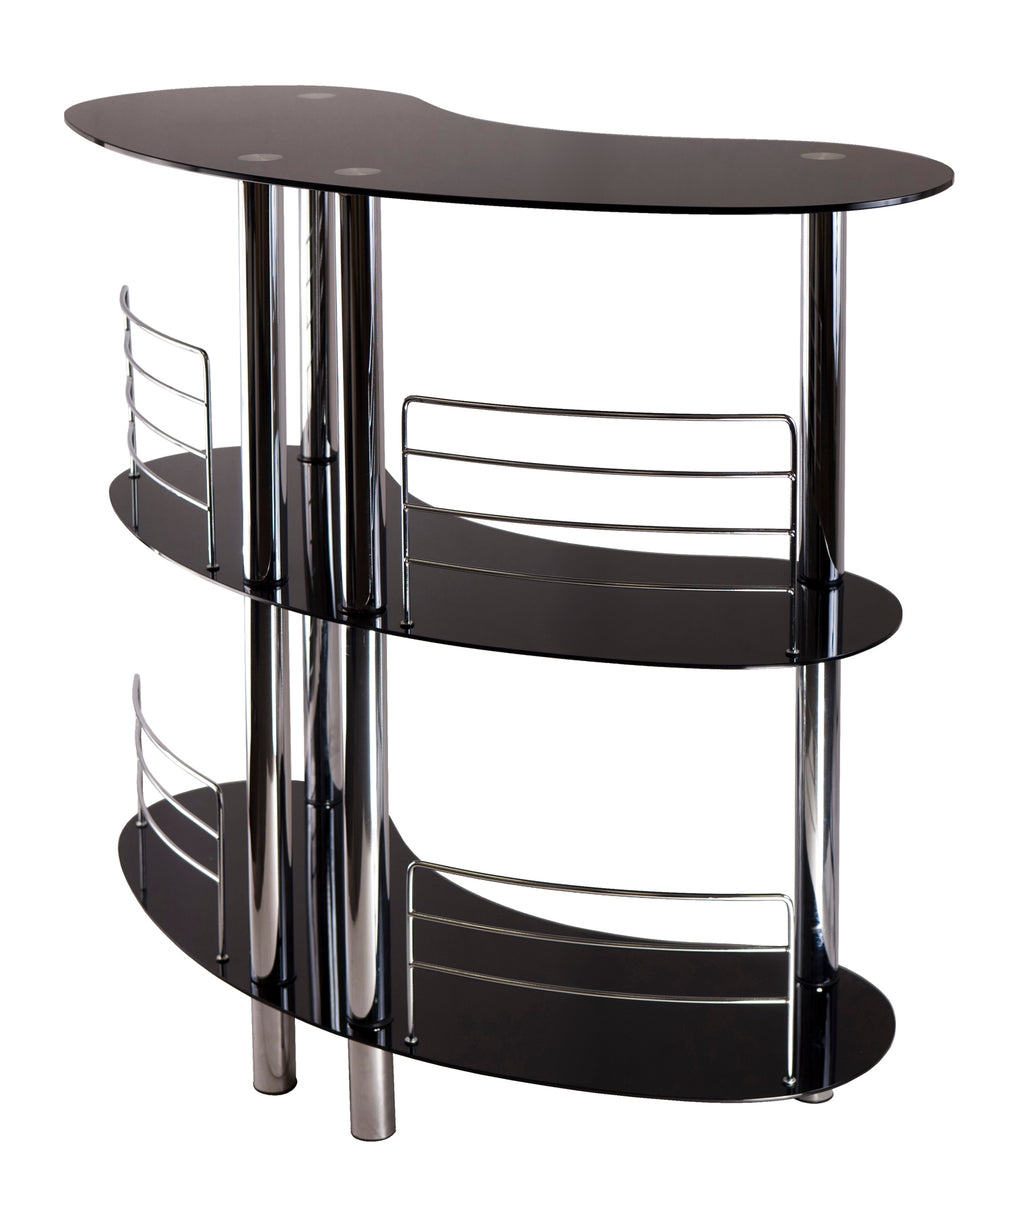 Martini Entertainment Bar - Pot Racks Plus